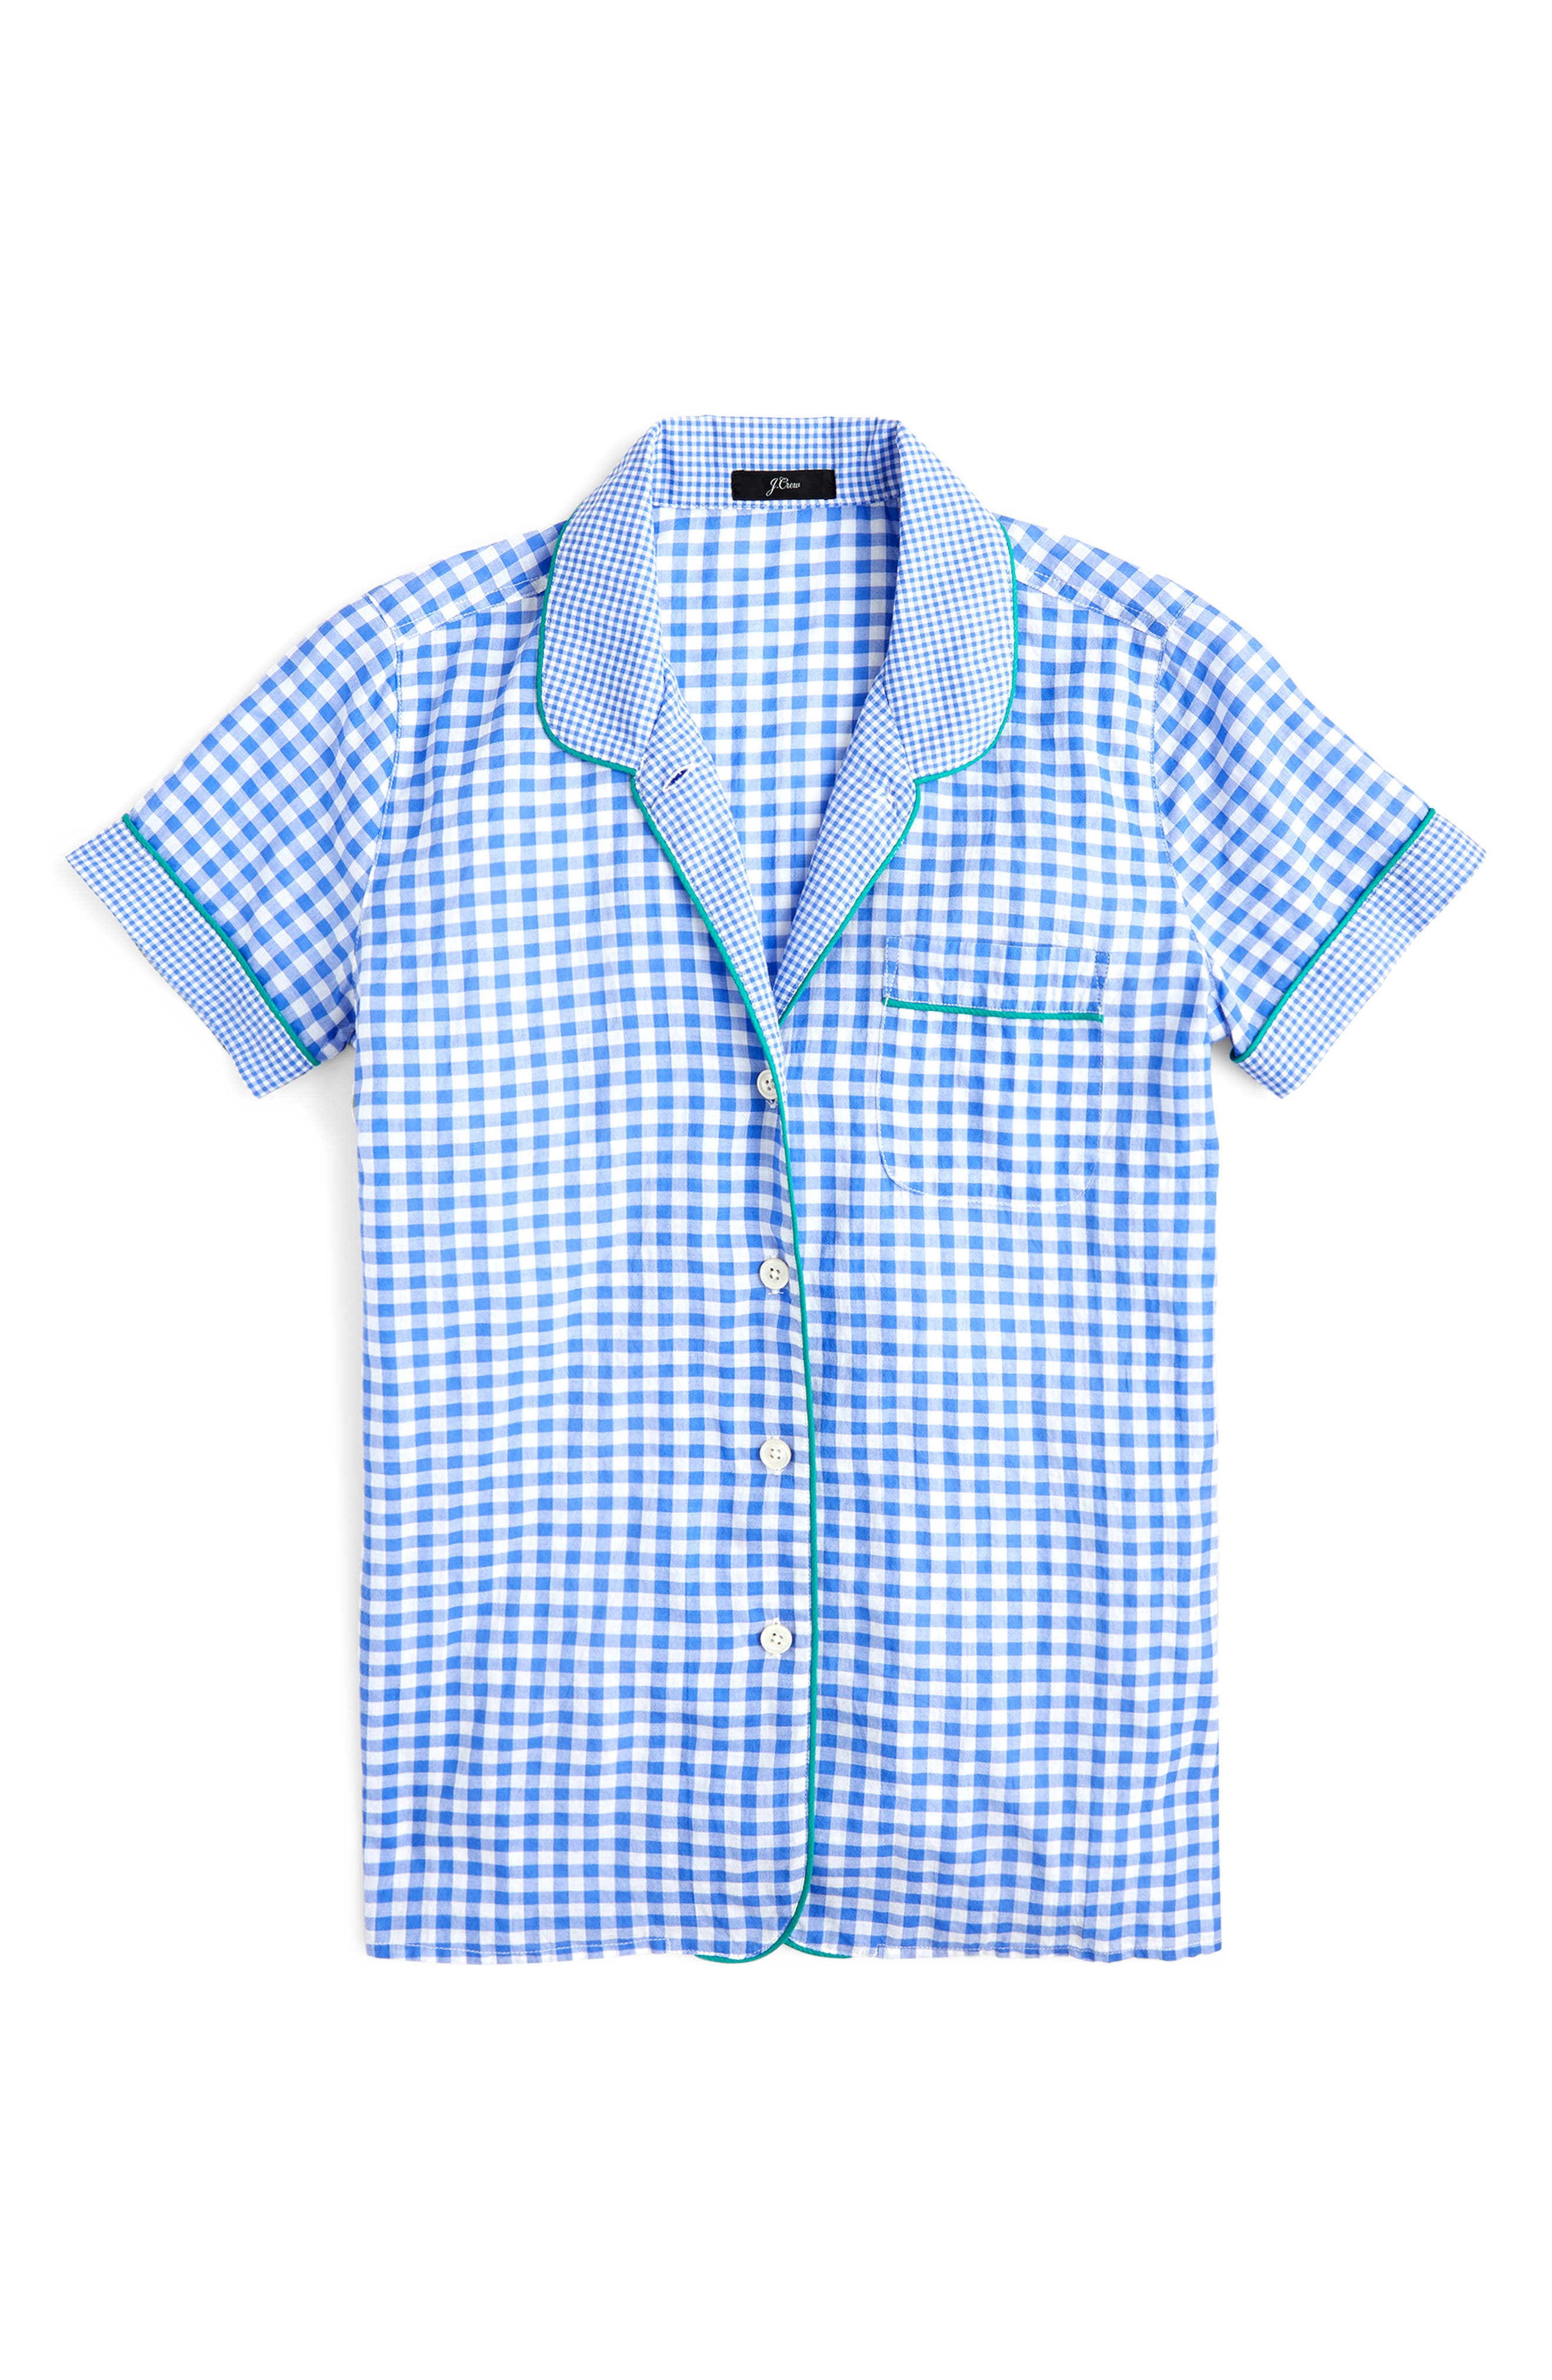 Plus Size J.crew Mixed Gingham Cotton Pajama Top, Blue